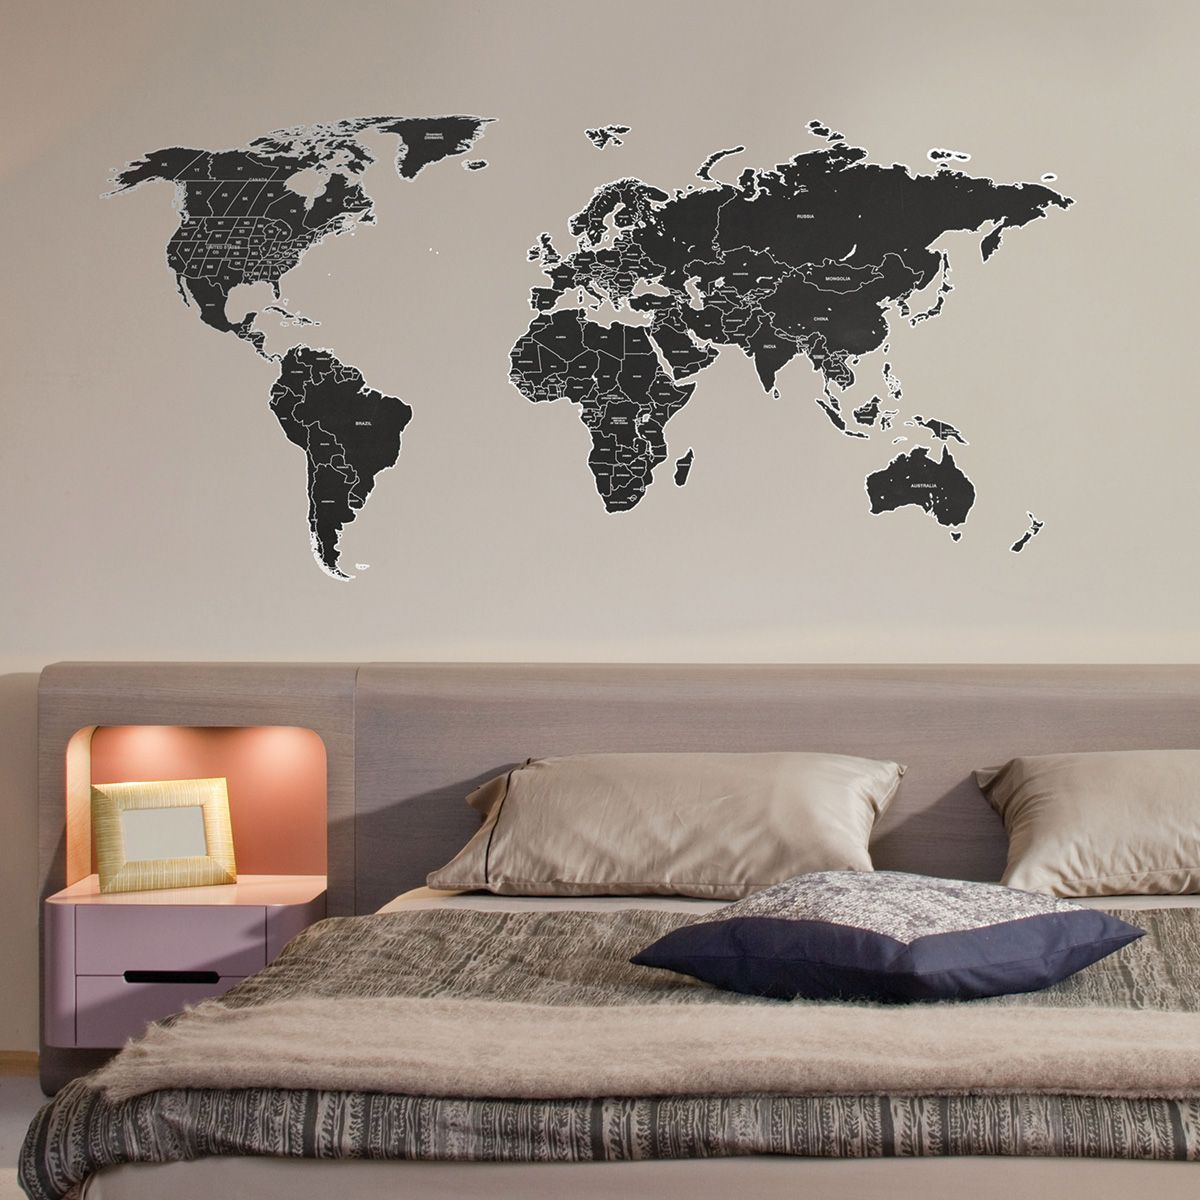 Black labelled world map wall sticker buy online today at bouf black labelled world map wall sticker buy online today at bouf gumiabroncs Gallery